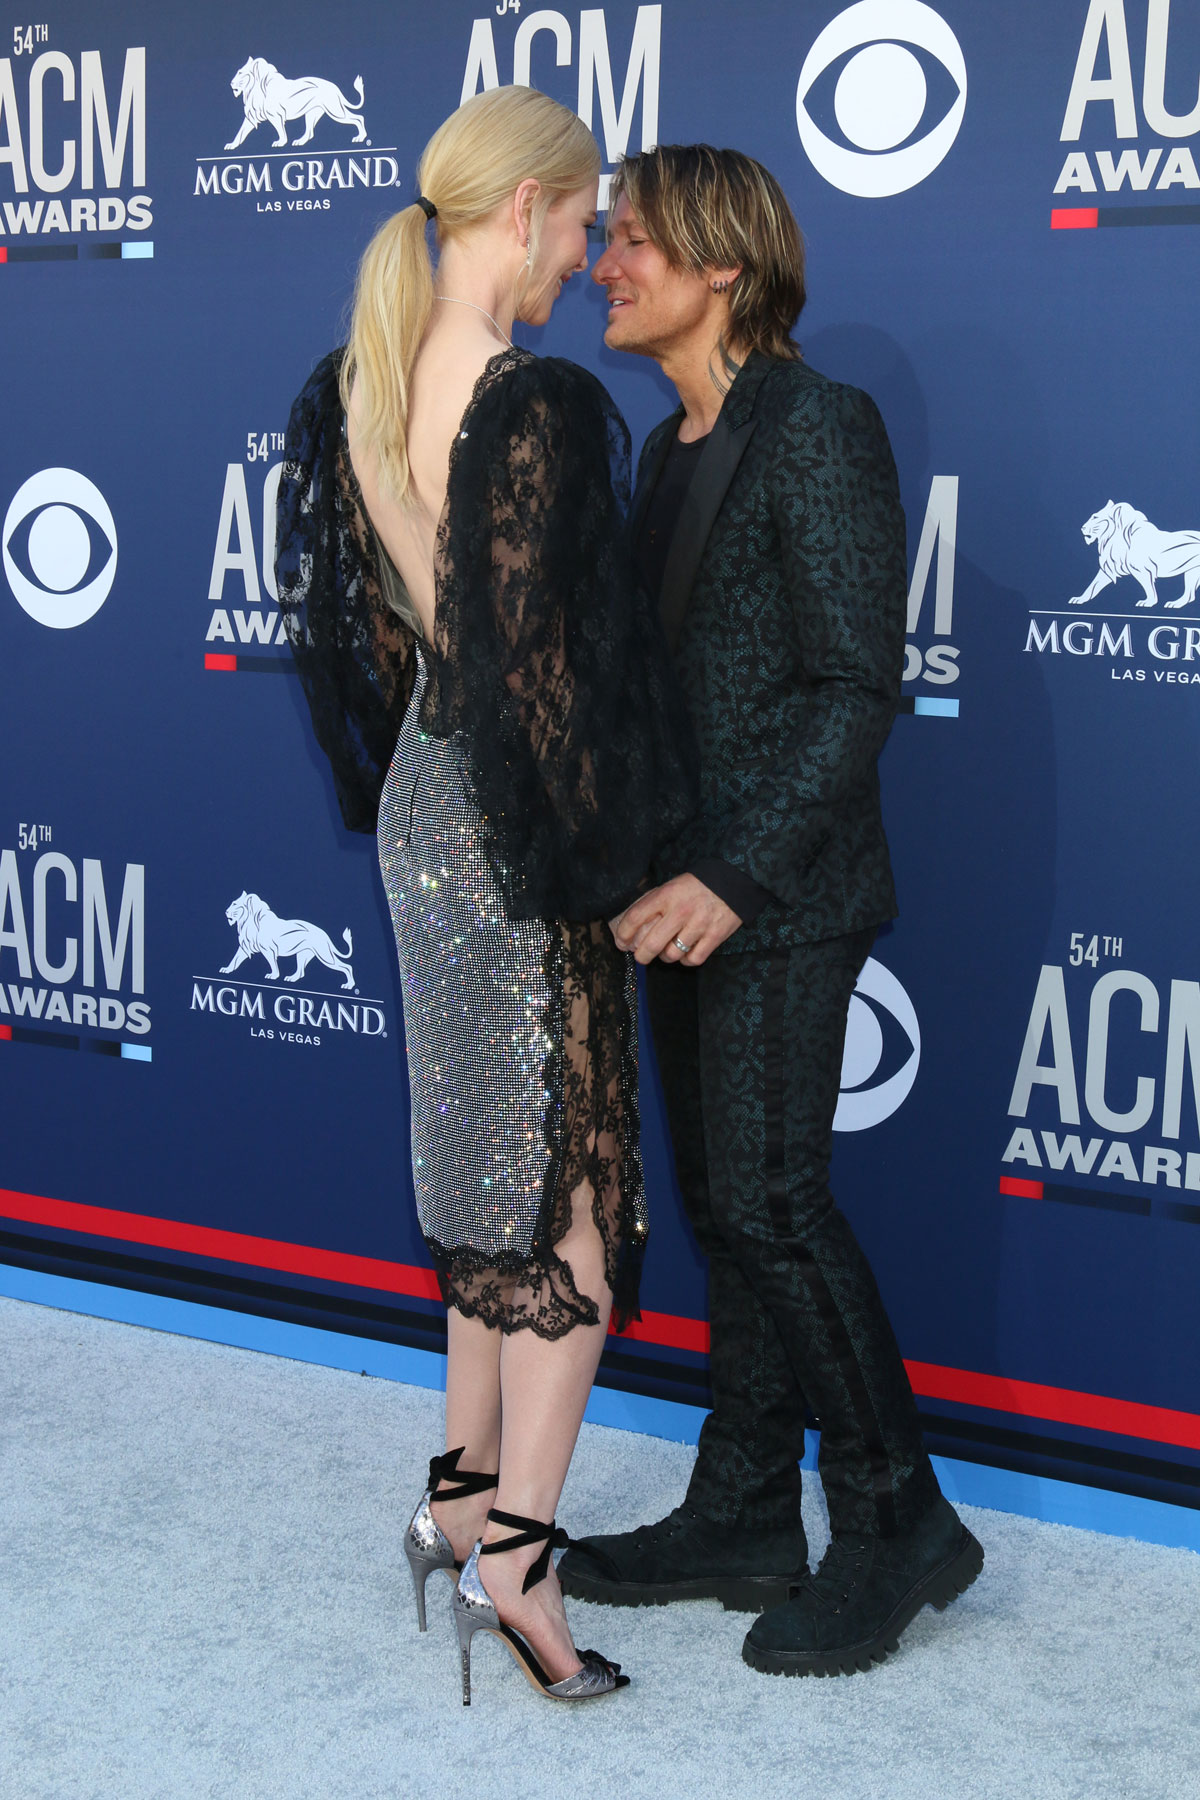 Keith Urban attends the ACMs adorably supported by his wife Nicole Kidman.